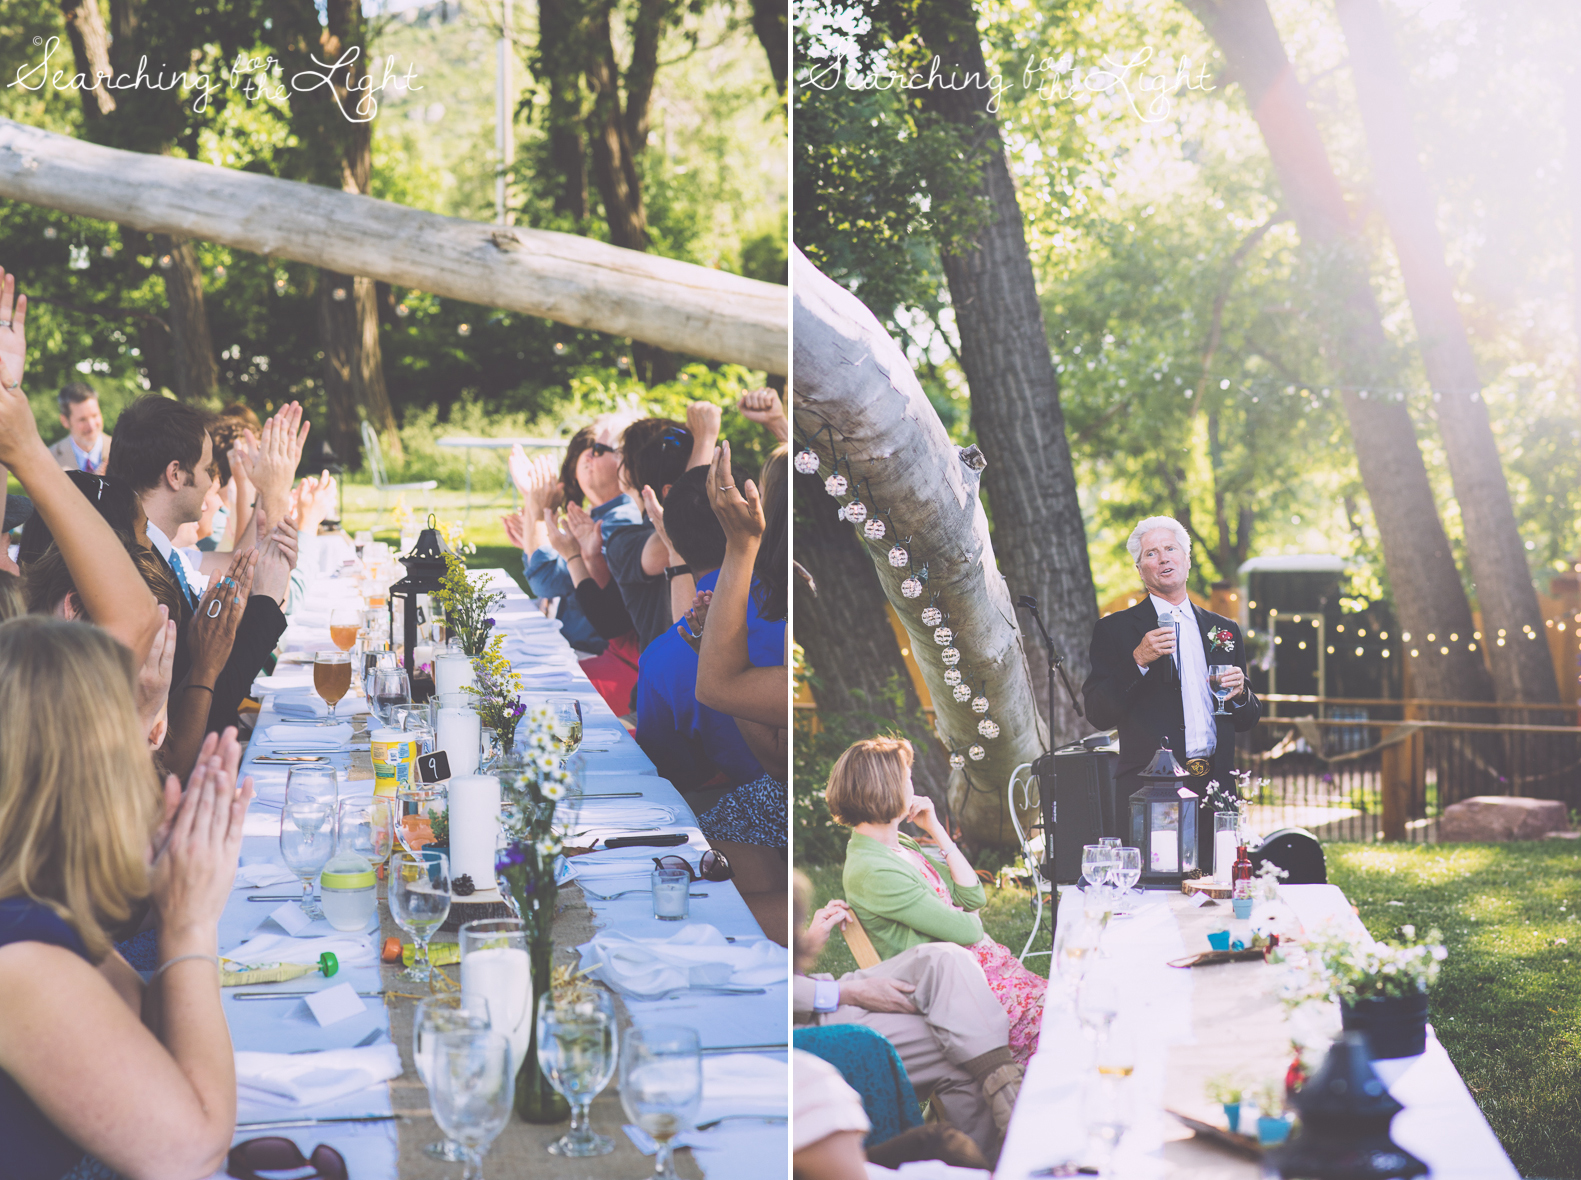 lyons_farmette_wedding_photochristy&eric_denver_wedding_photographer1192&1374_vintage